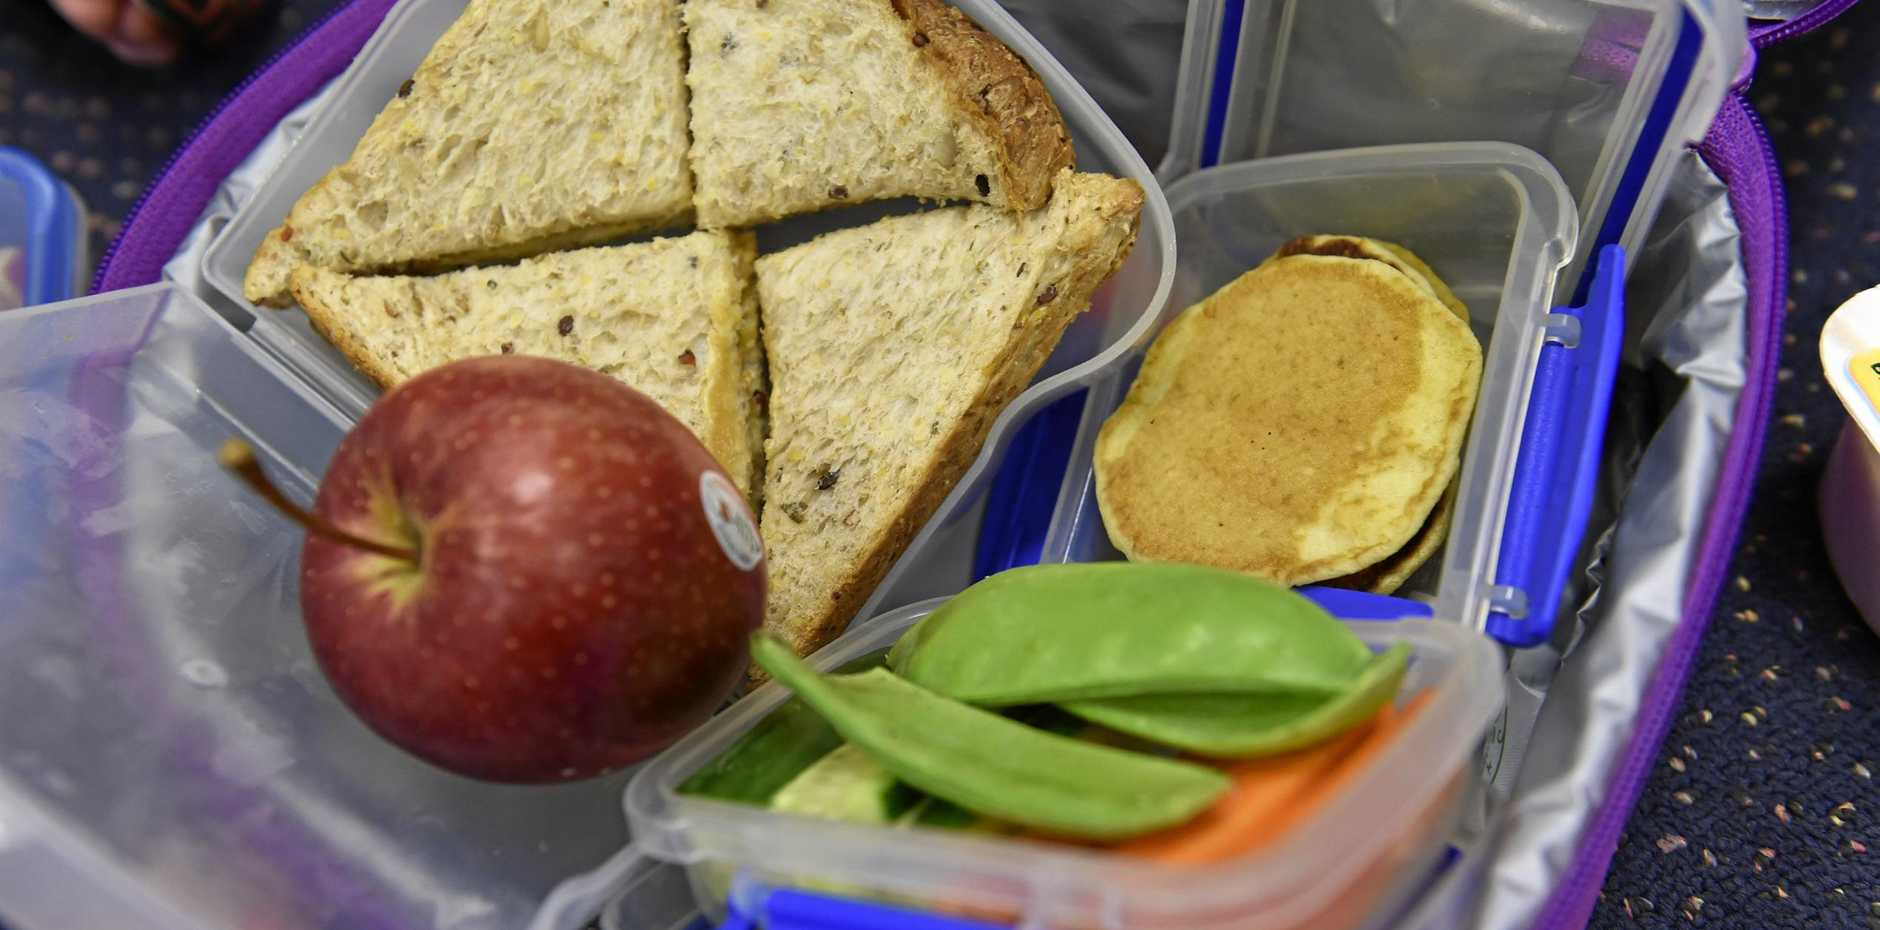 EASY EATING: Reducing waste in your child's lunchbox is good for both the environment and your little's one's growing body.